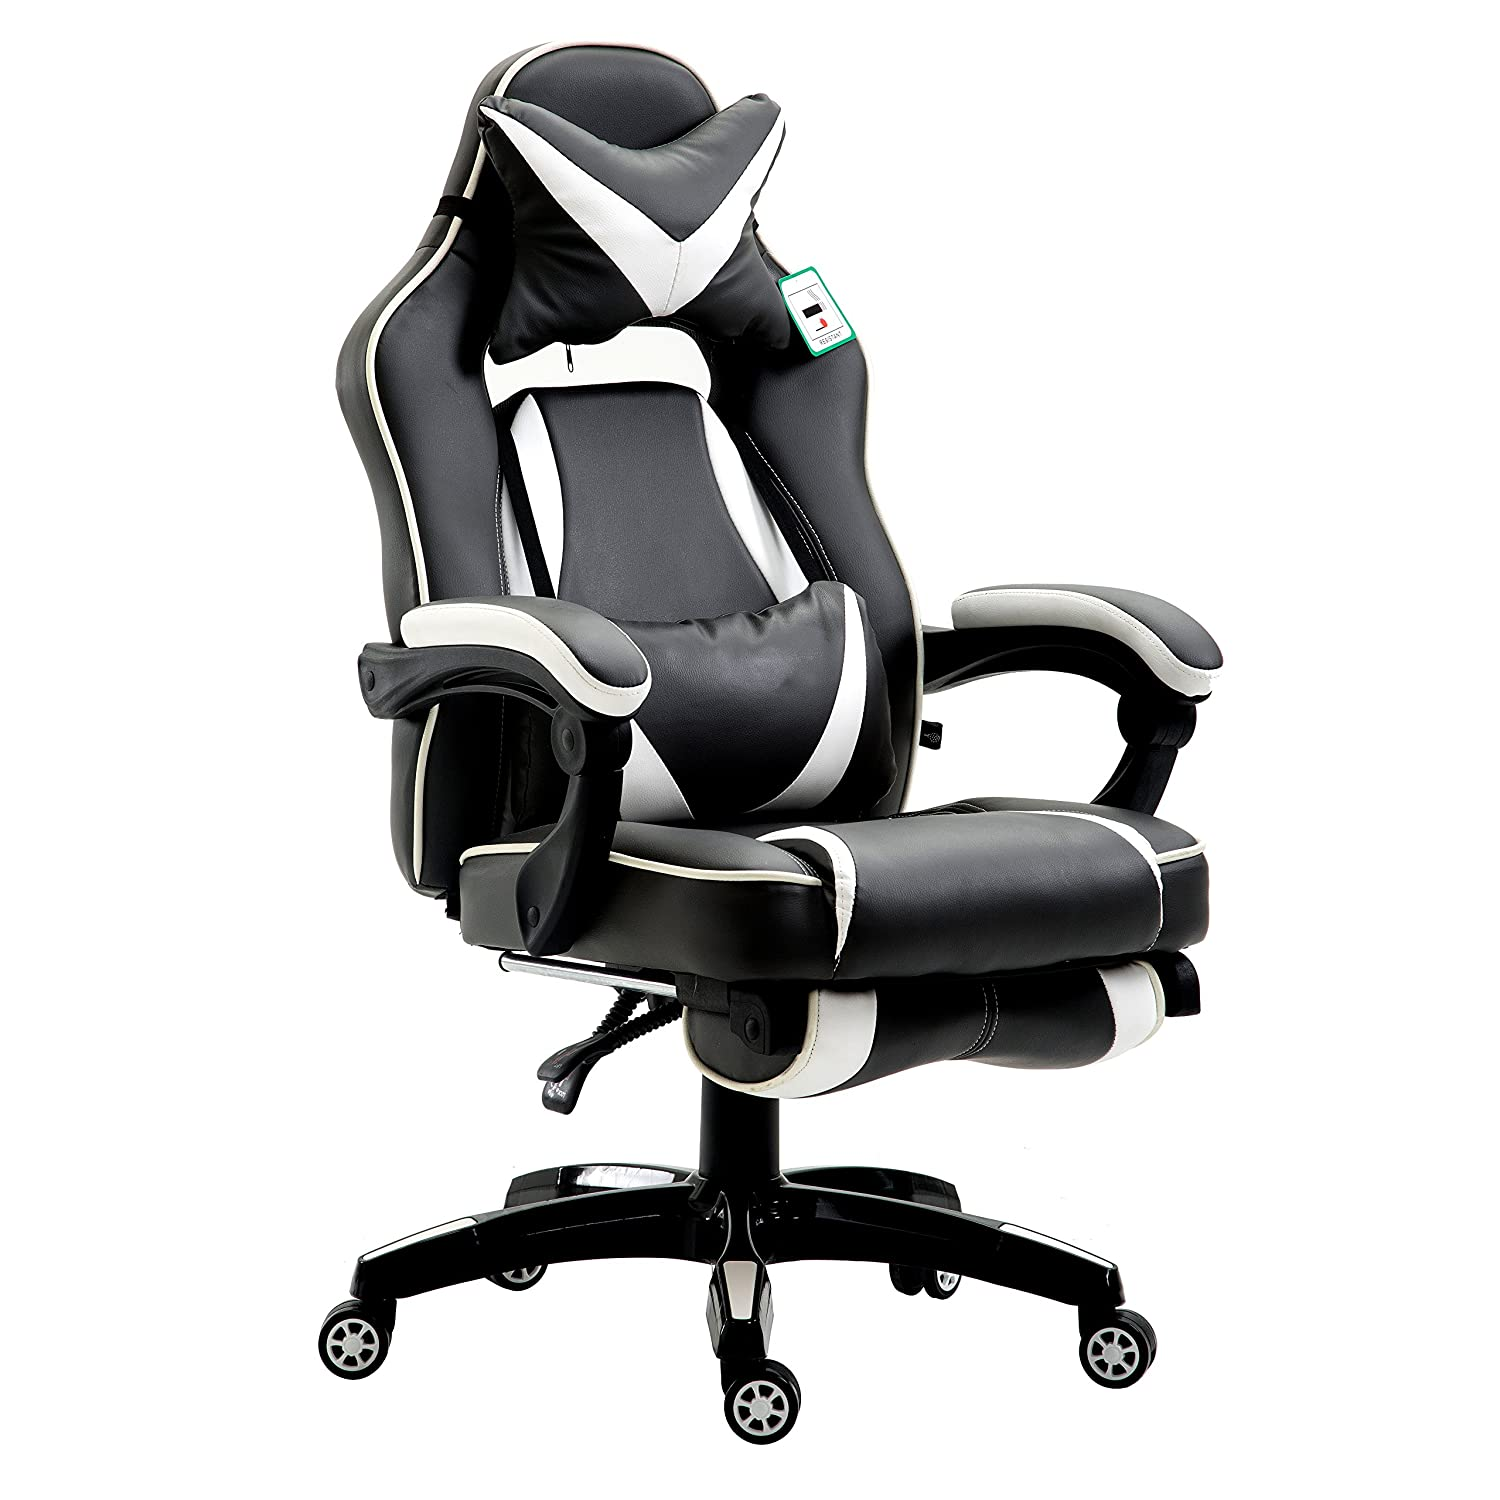 Cherry Tree Furniture CTF High Back Recliner Racing Style Gaming Swivel Chair with Footrest & Adjustable Lumbar & Head Cushion (Black & White)